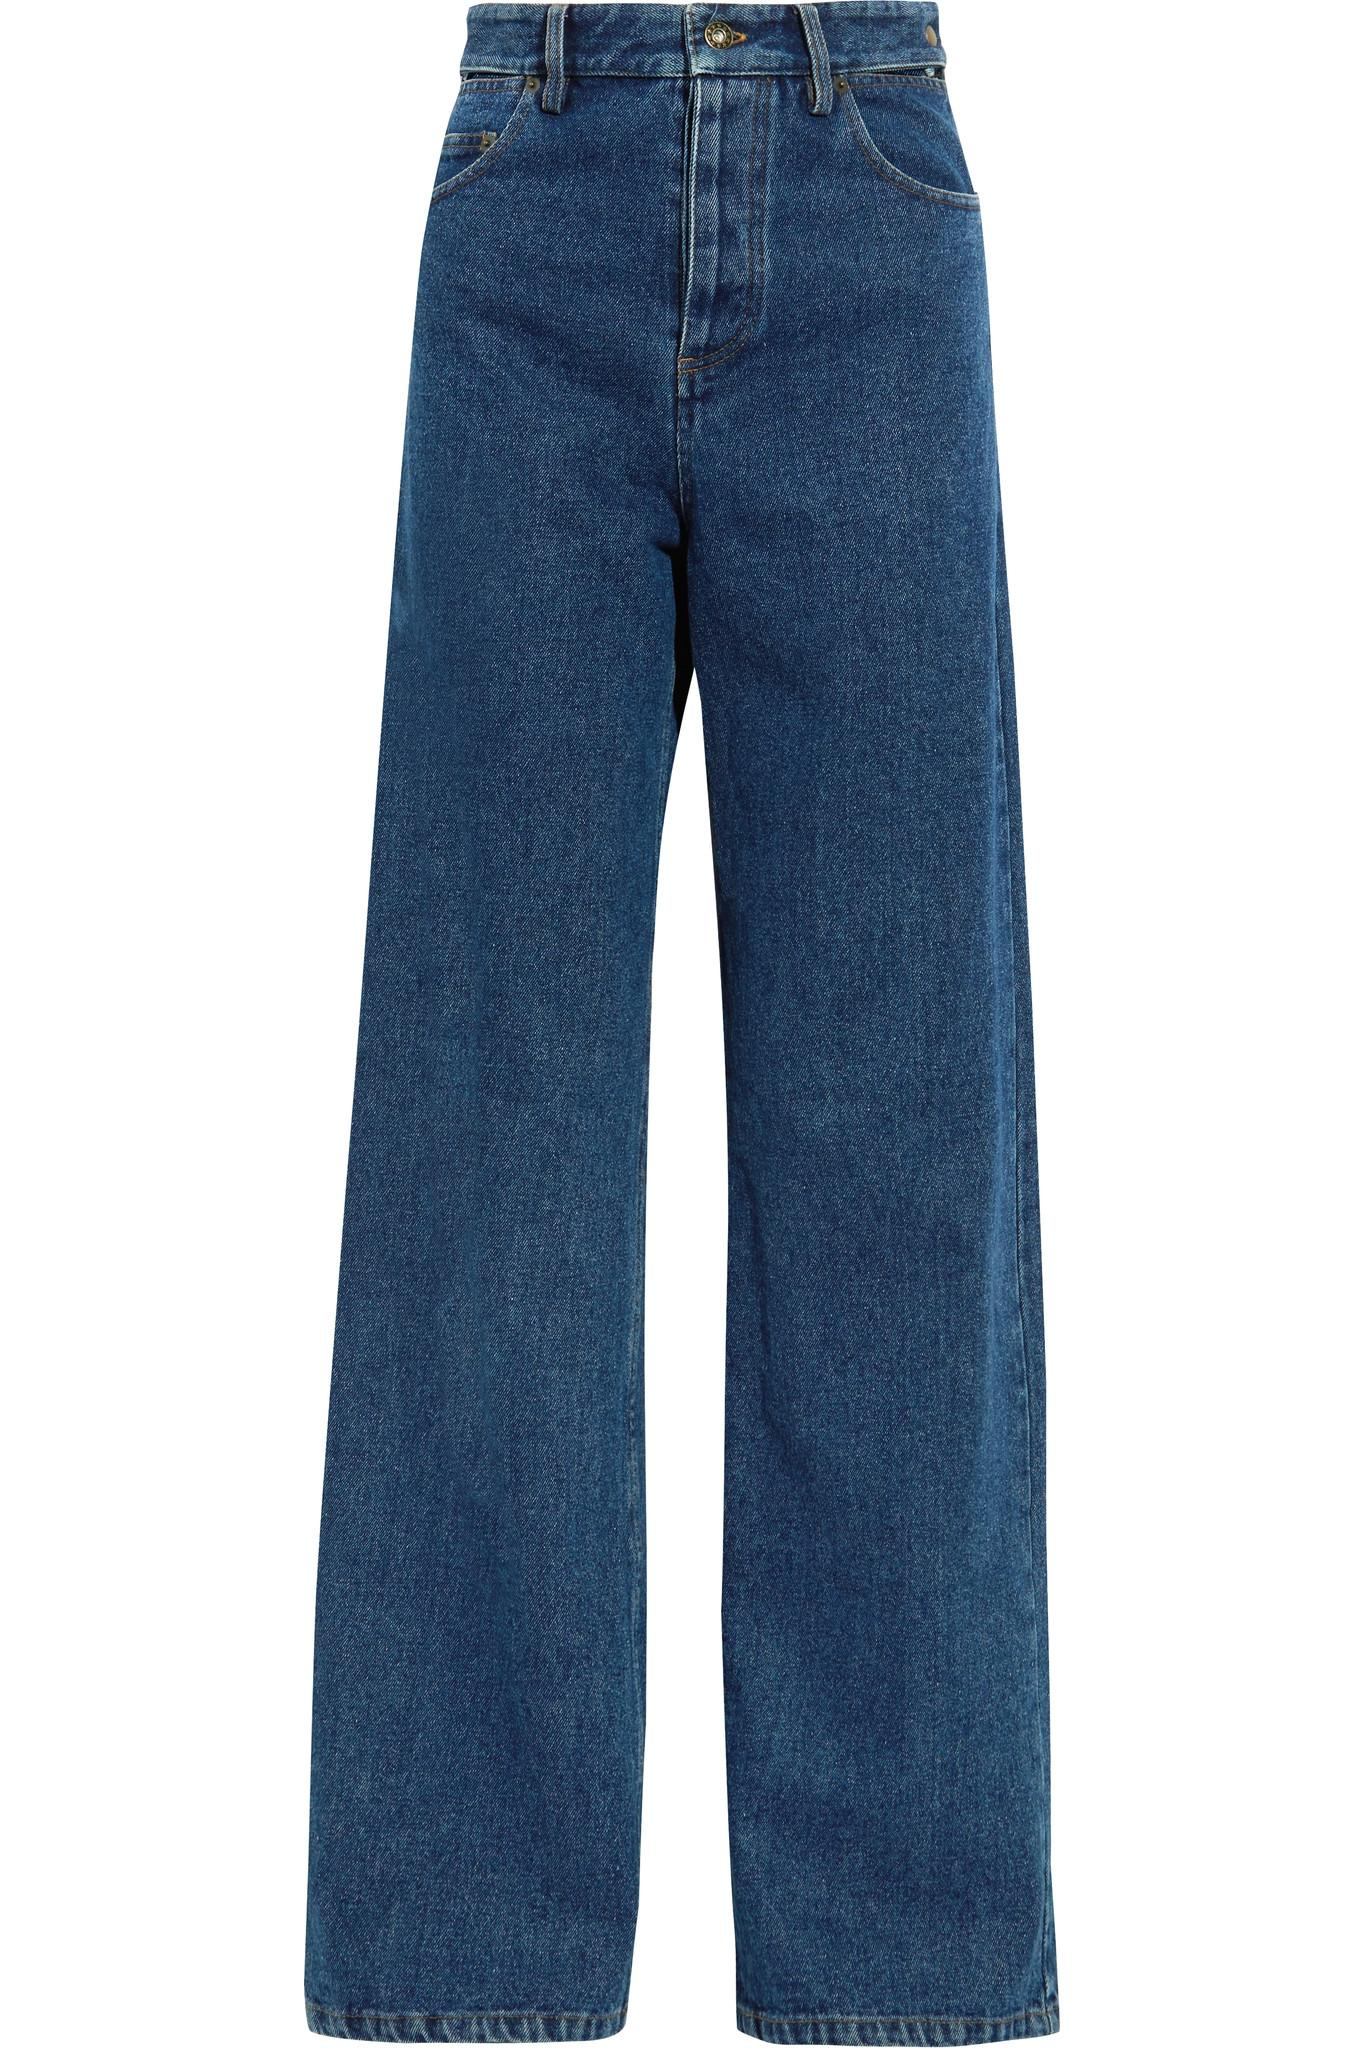 Lyst - Y. Project Cutout High-rise Wide-leg Jeans in Blue